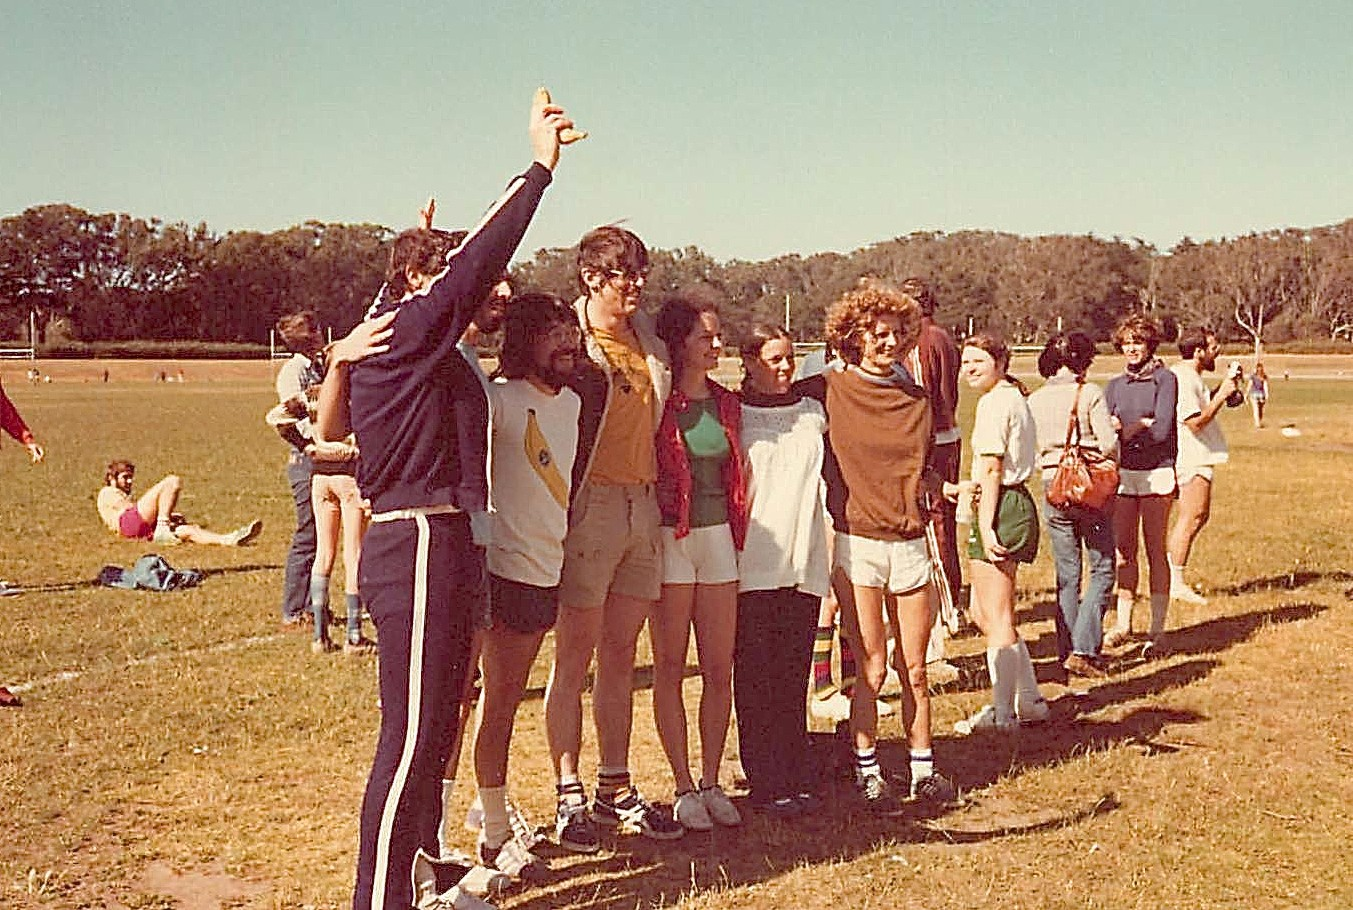 Mike Stallcup, Keith Yamamoto, Jose Bonner, Bonnie Maler, Toni King, Janet Ring 1977 Great Race II UCSF